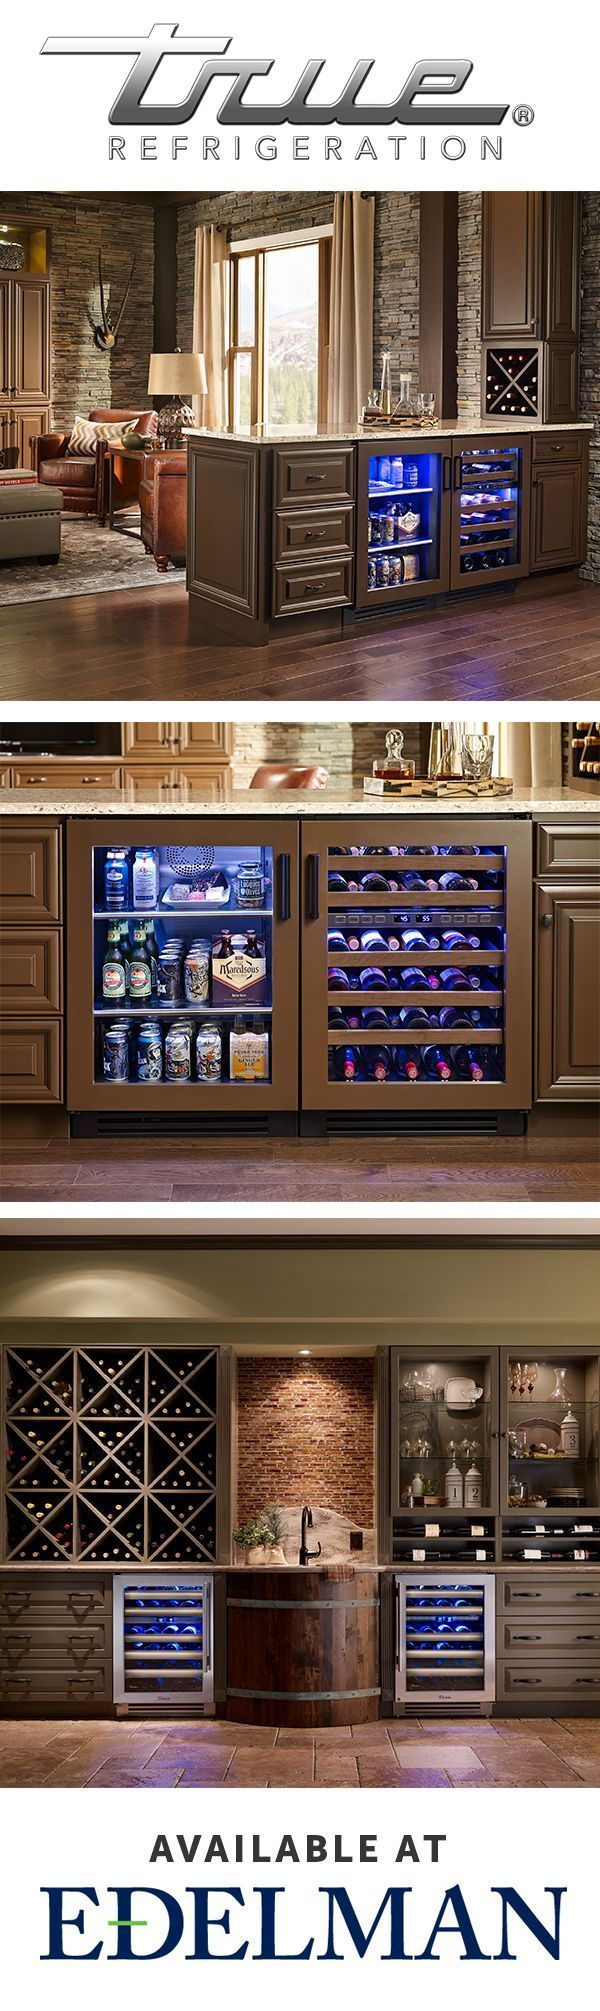 Learn how to use undercounter refrigeration to create the kitchen, wine room, or man cave of your dreams. True Refrigeration available at Edelman. | True Residential #WineCellar